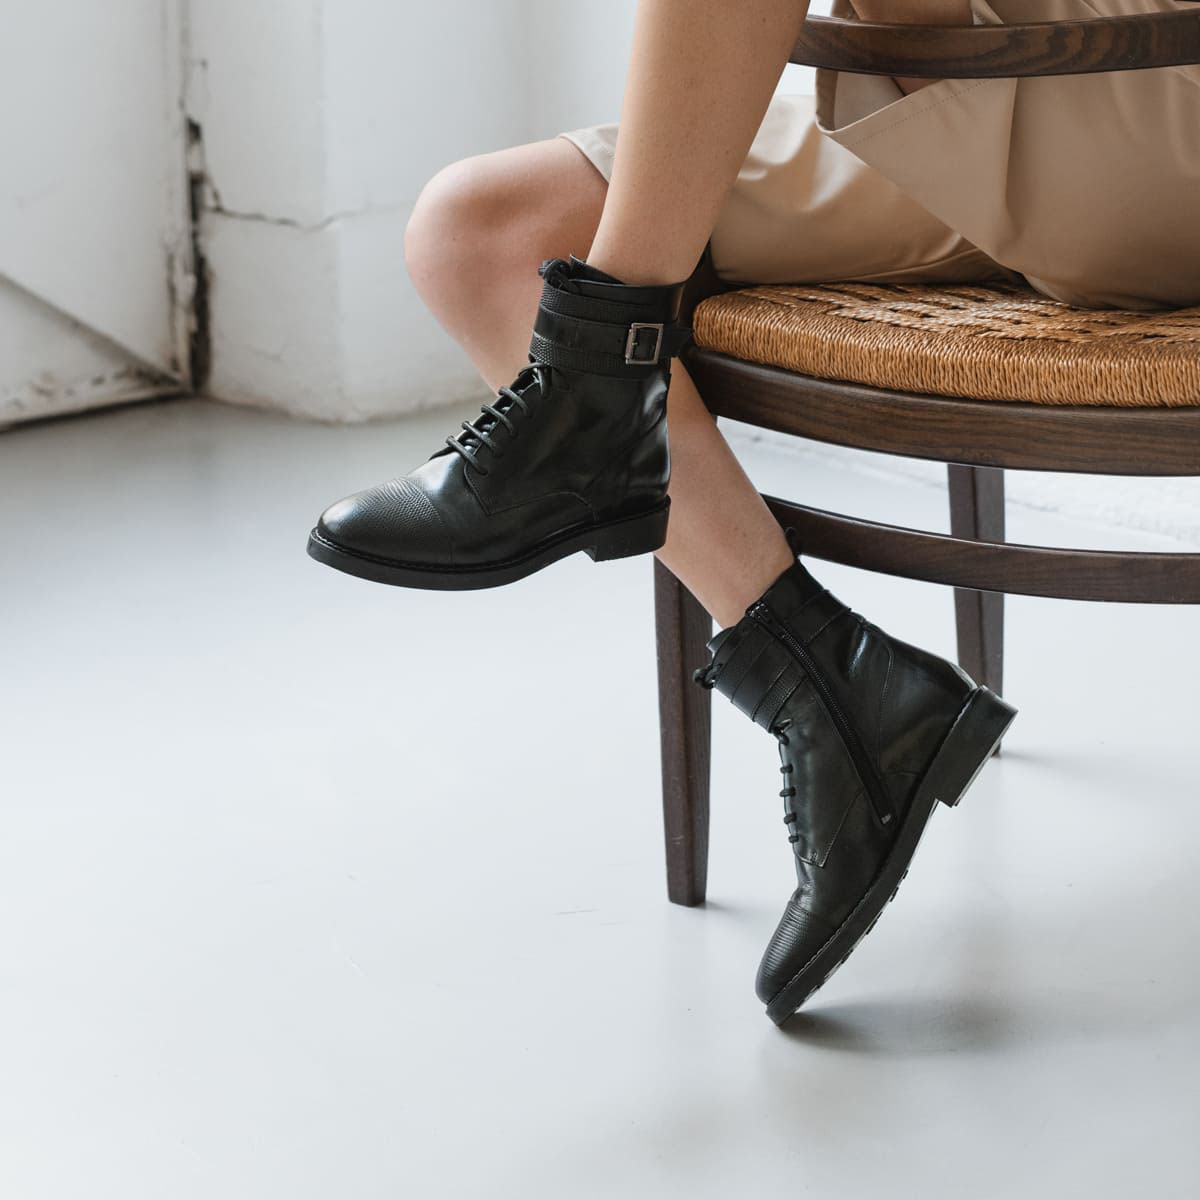 Boots with buckle and laces in black snakeskin leather